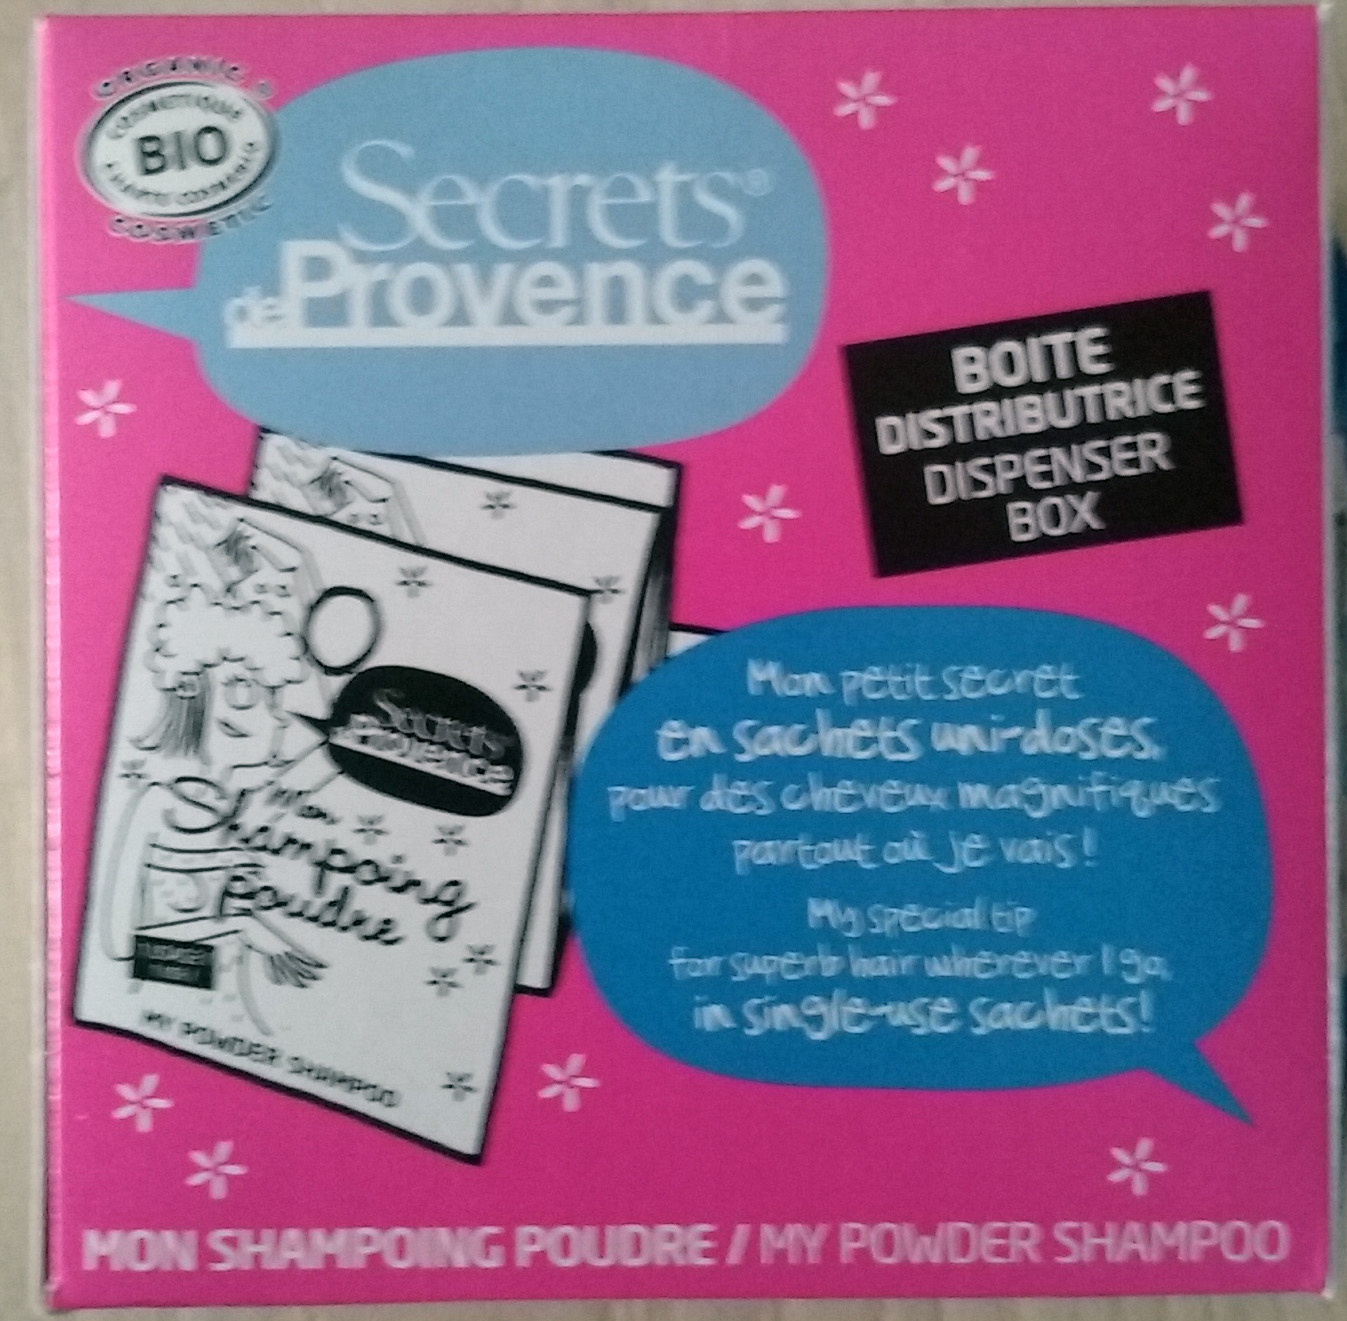 Shampoing poudre anti-pelliculaire - Product